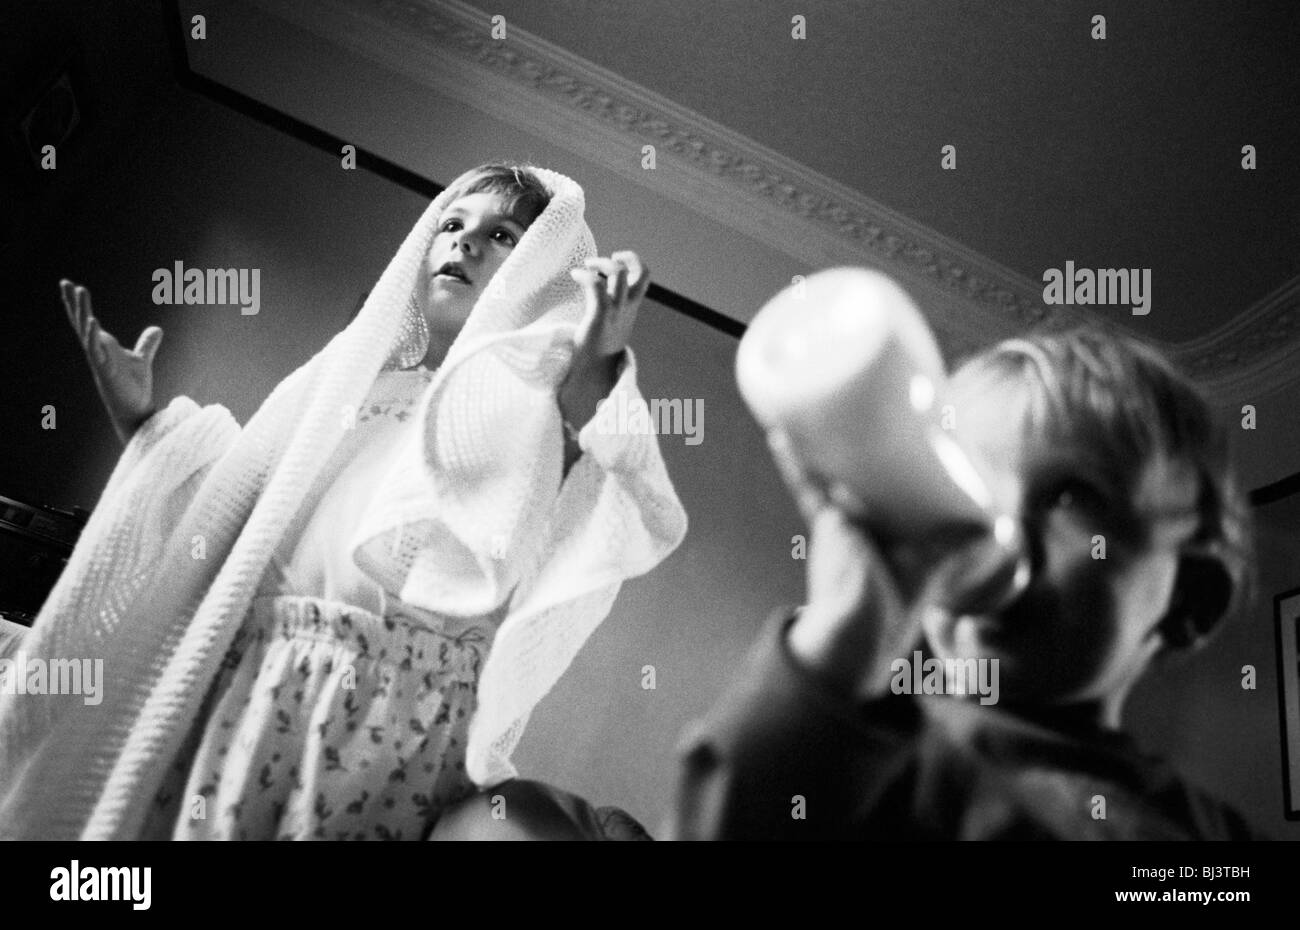 A four year-old girl plays some sort of religious role-play game - perhaps an angel or the Virgin Mary with her - Stock Image